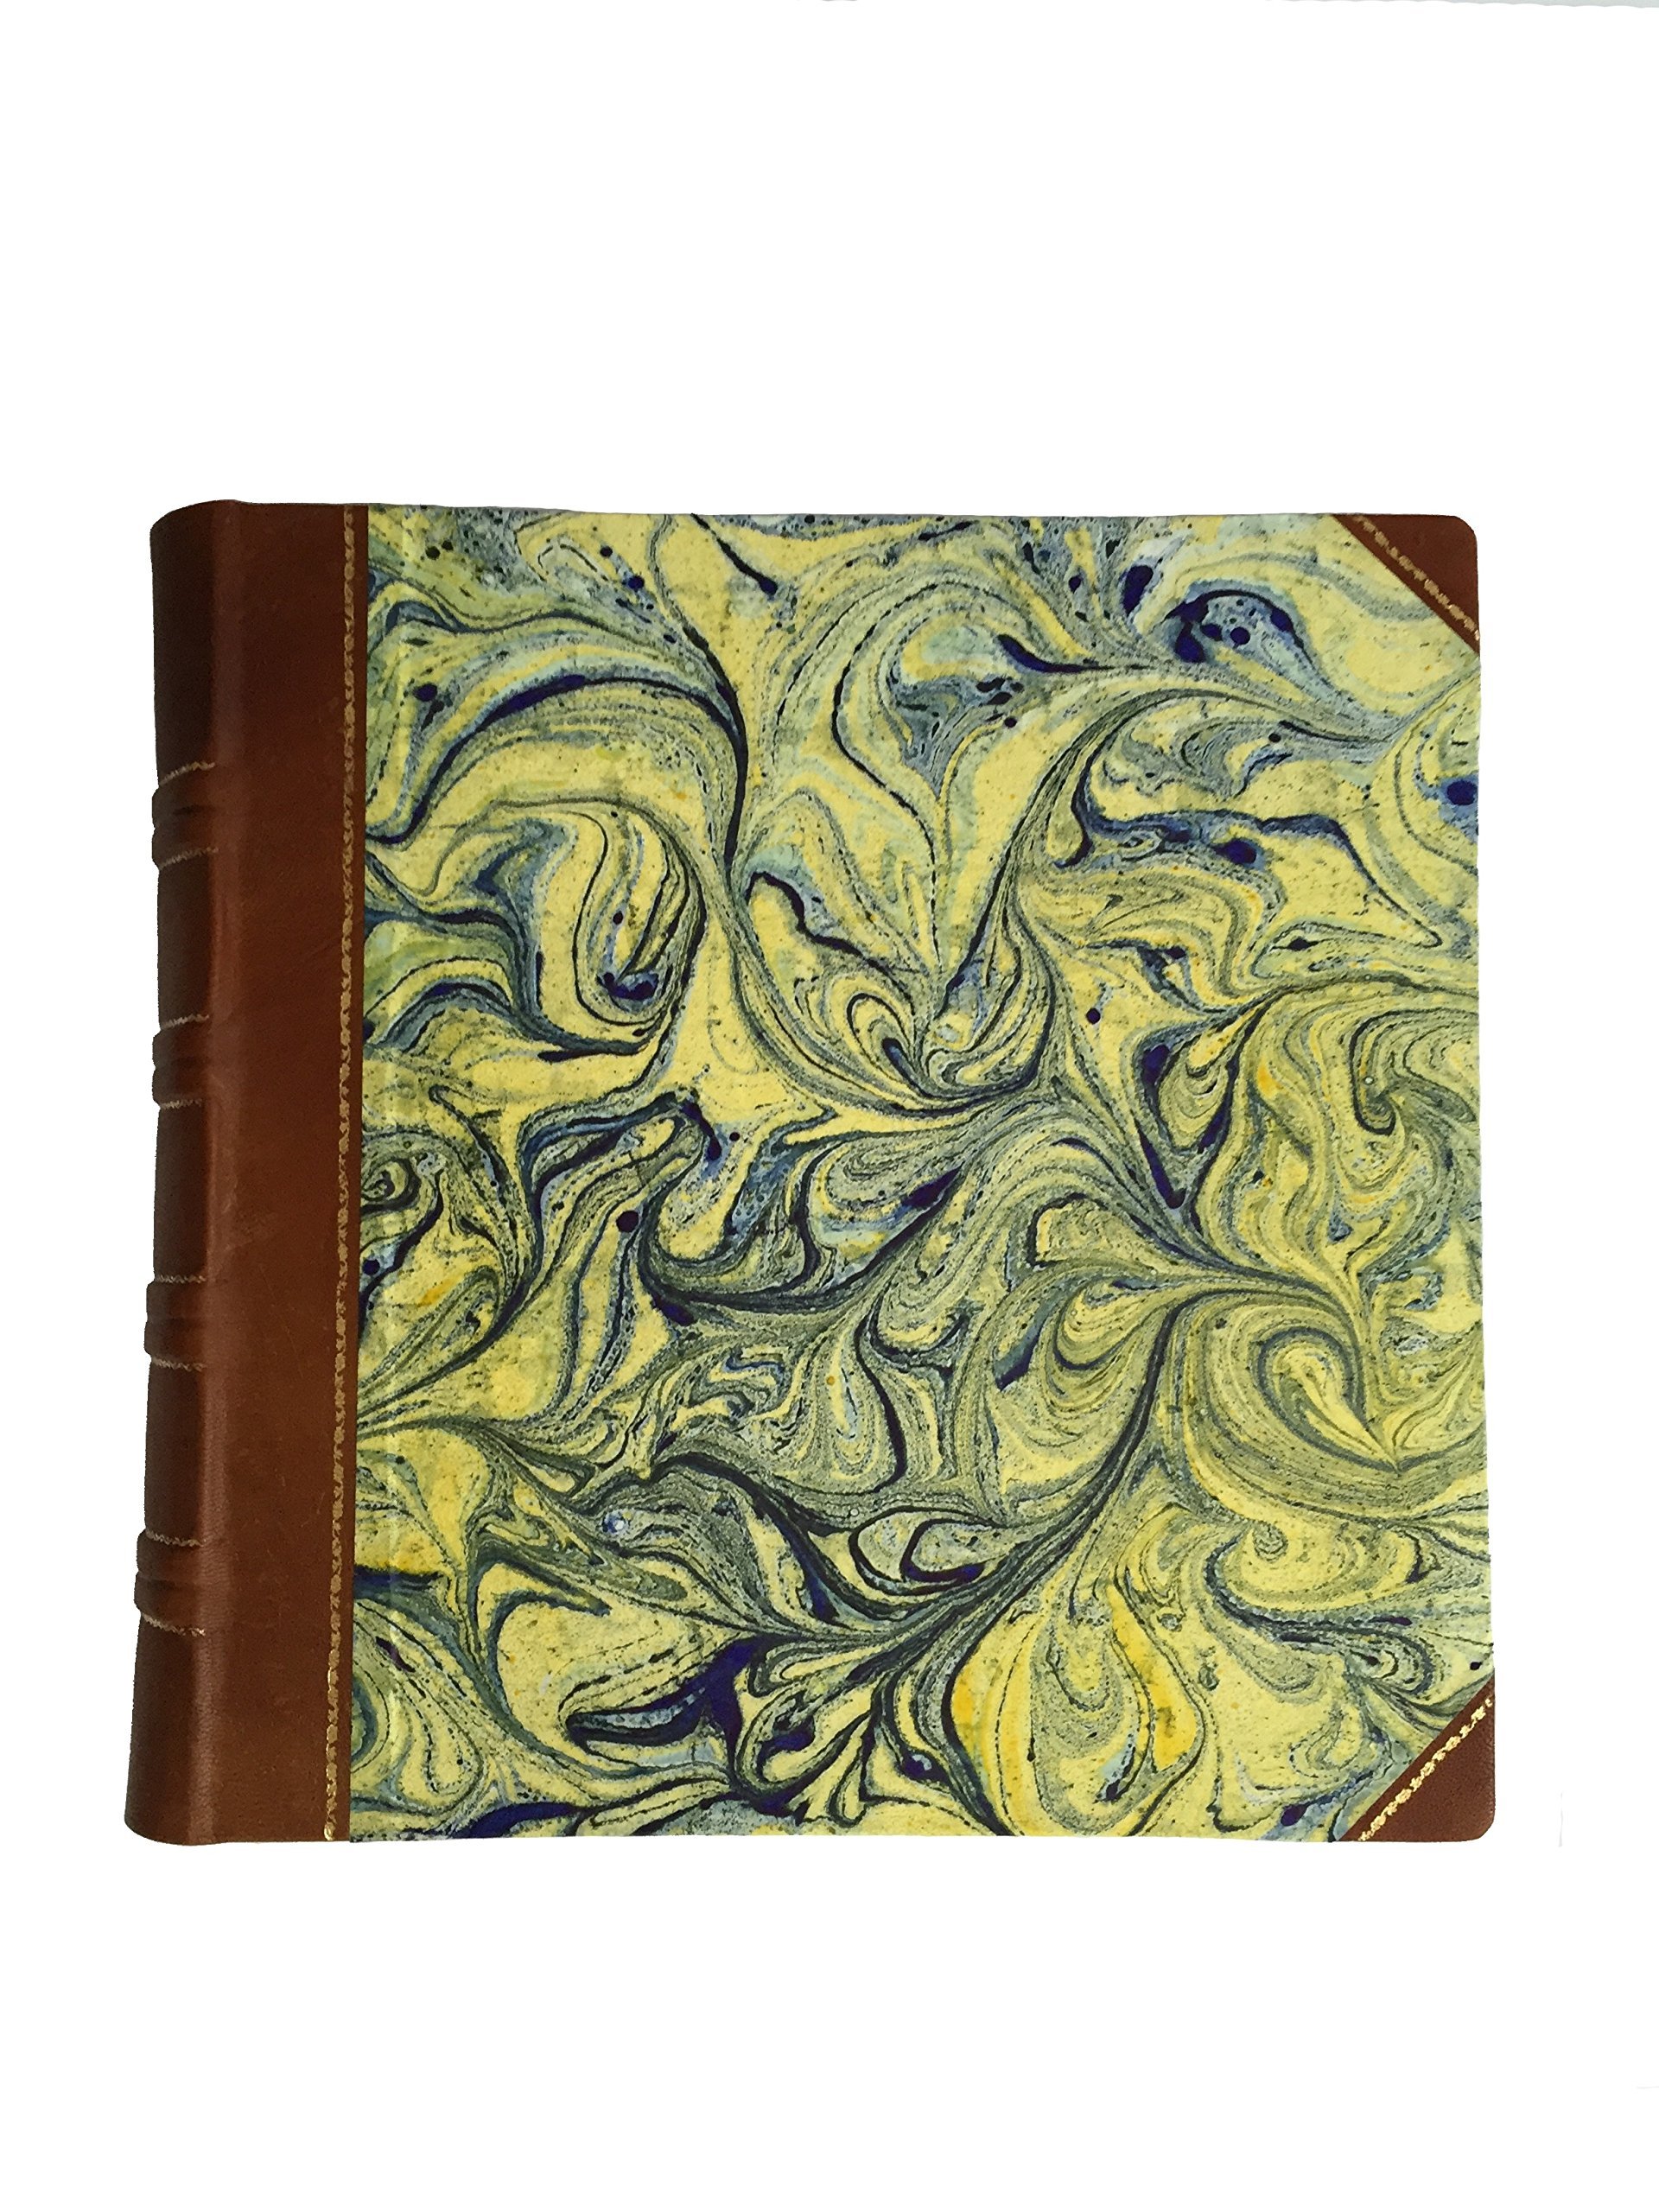 Legatoria De Pasquale - Hand-Crafted Leather Photo Album Decorated with Gold and Medieval-Style Paper